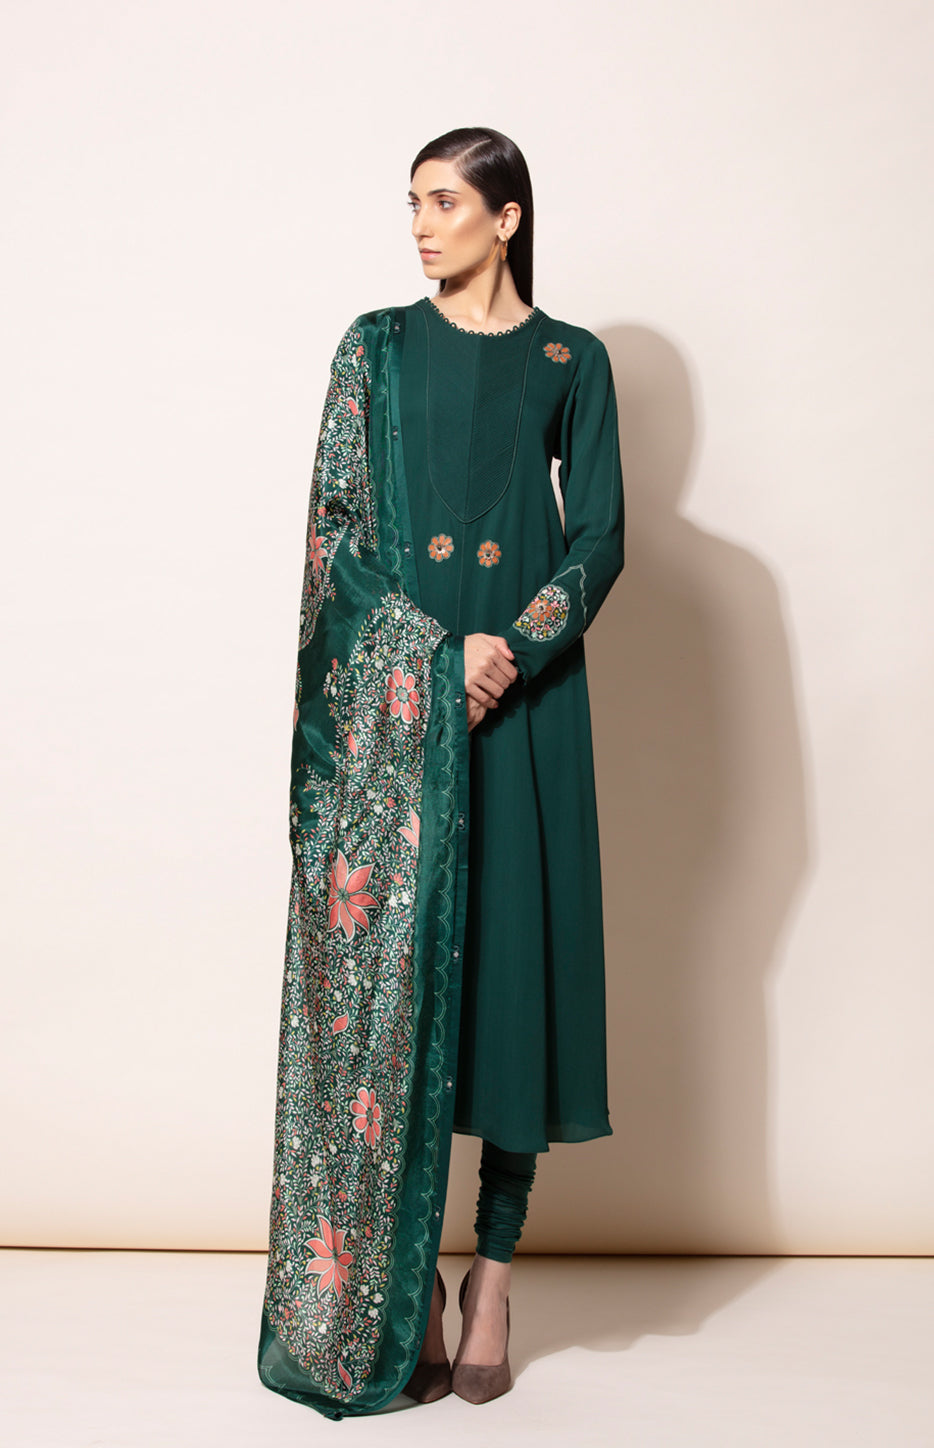 Bottle Green Anarkali Suit with Silk Printed Dupatta